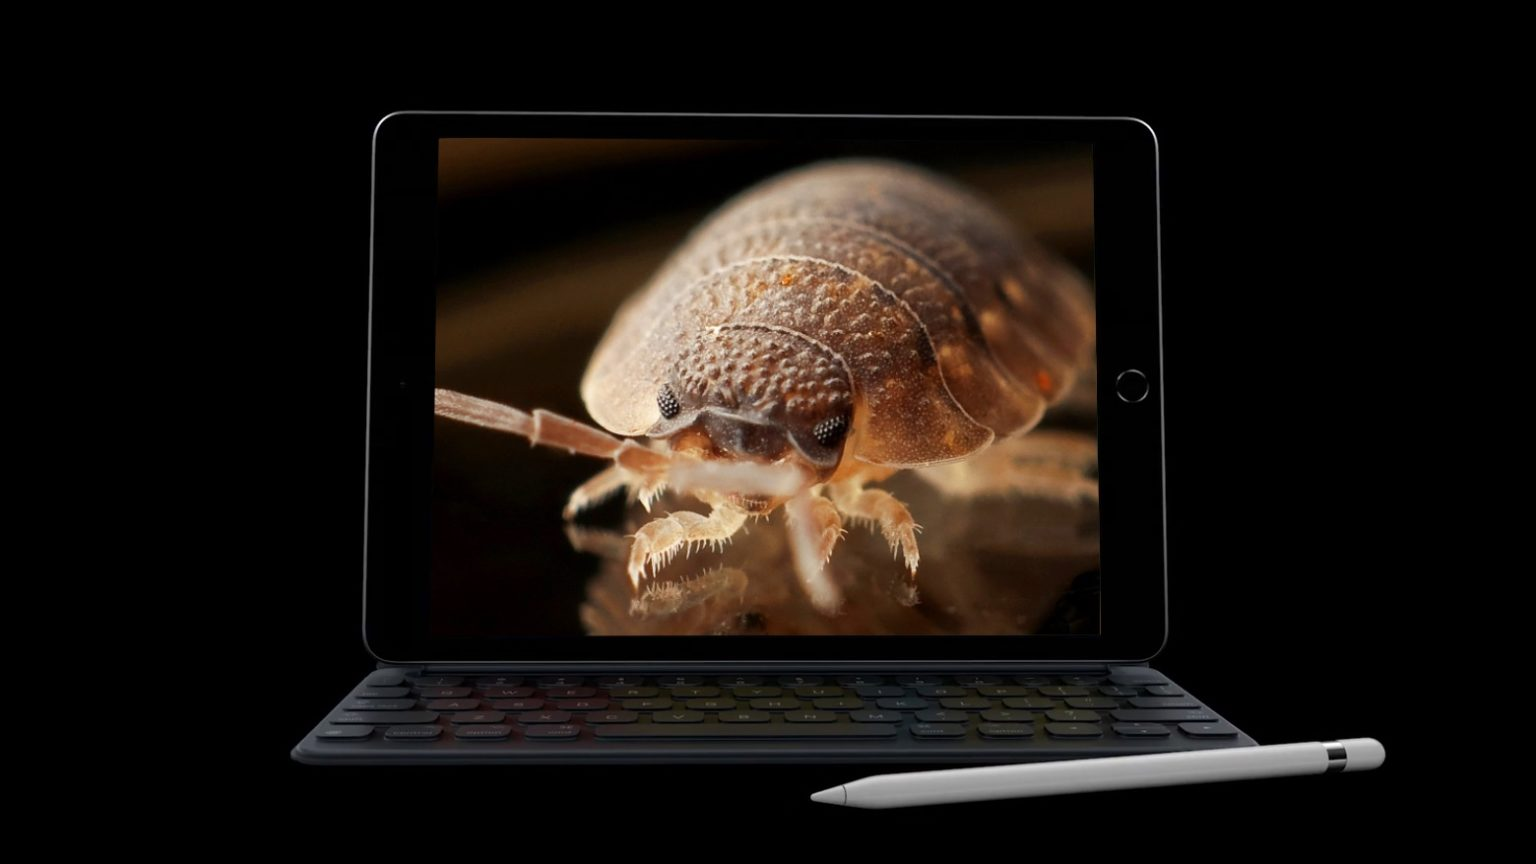 Even the best iPads have bugs